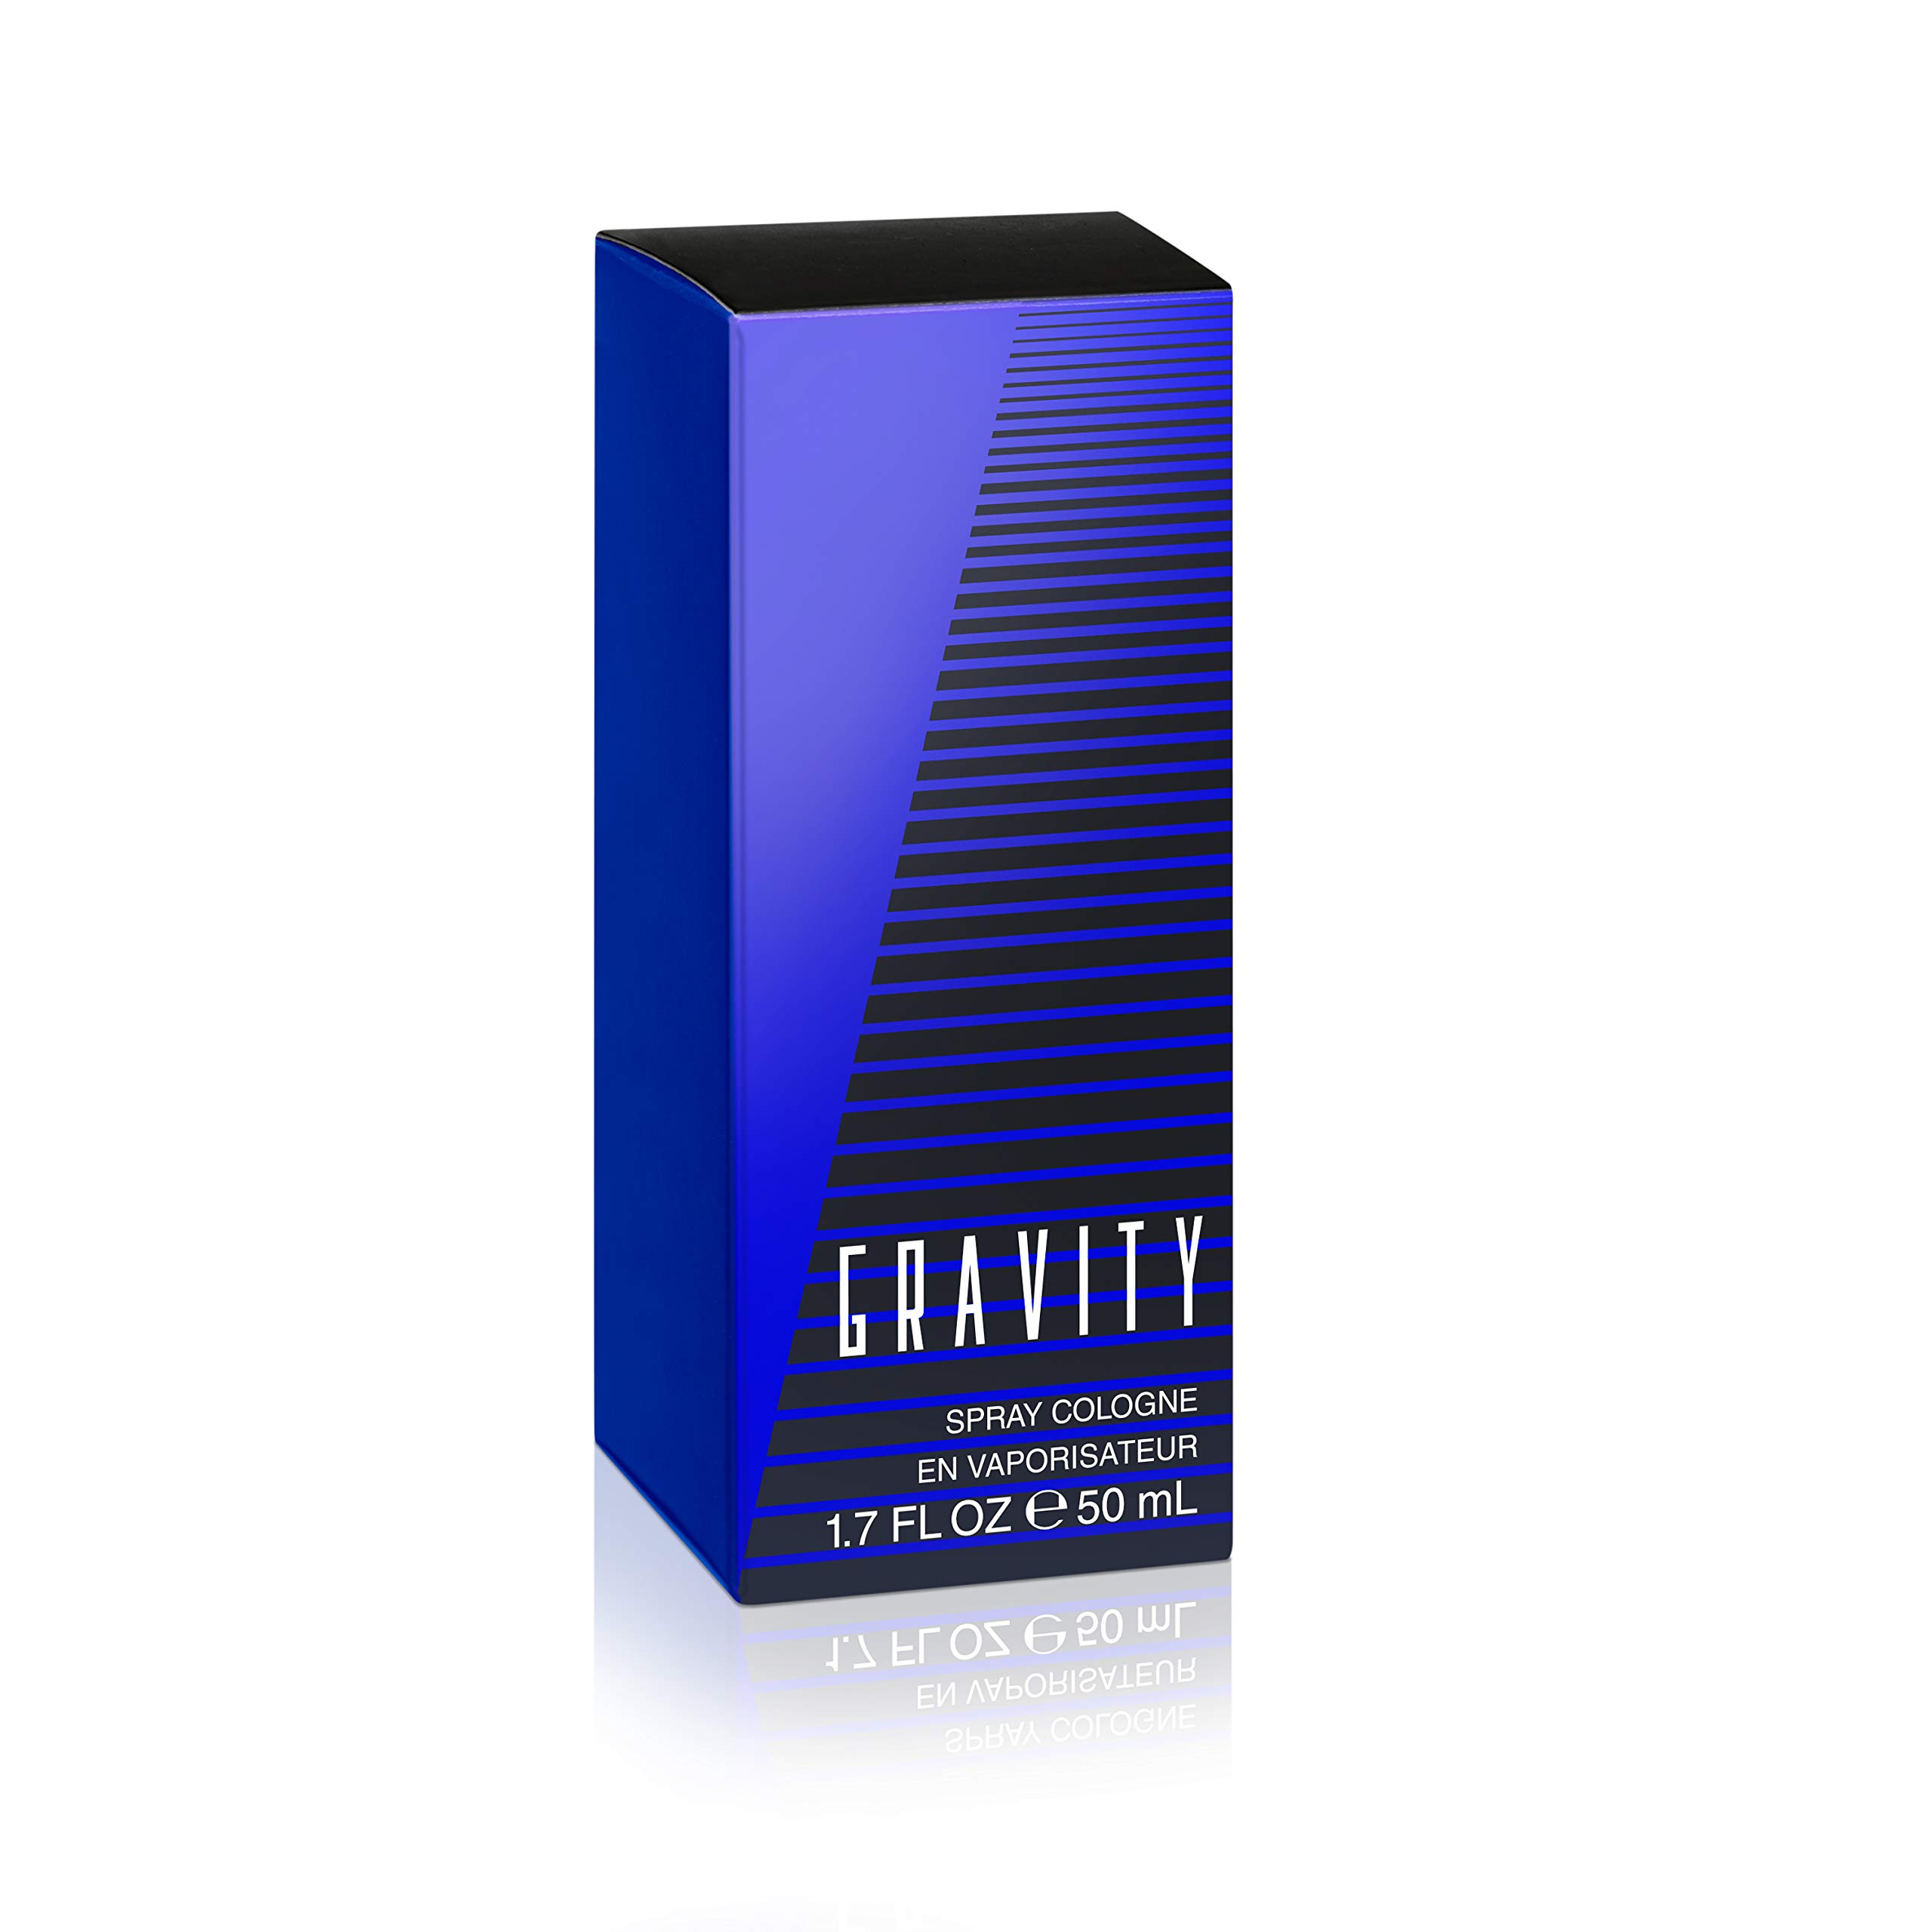 Coty Classics Perfume Gravity 1.7 Fluid Ounce Men's Fragrance in a Classic, Appealing Scent, Great Gift for Cologne or Perfume Lovers